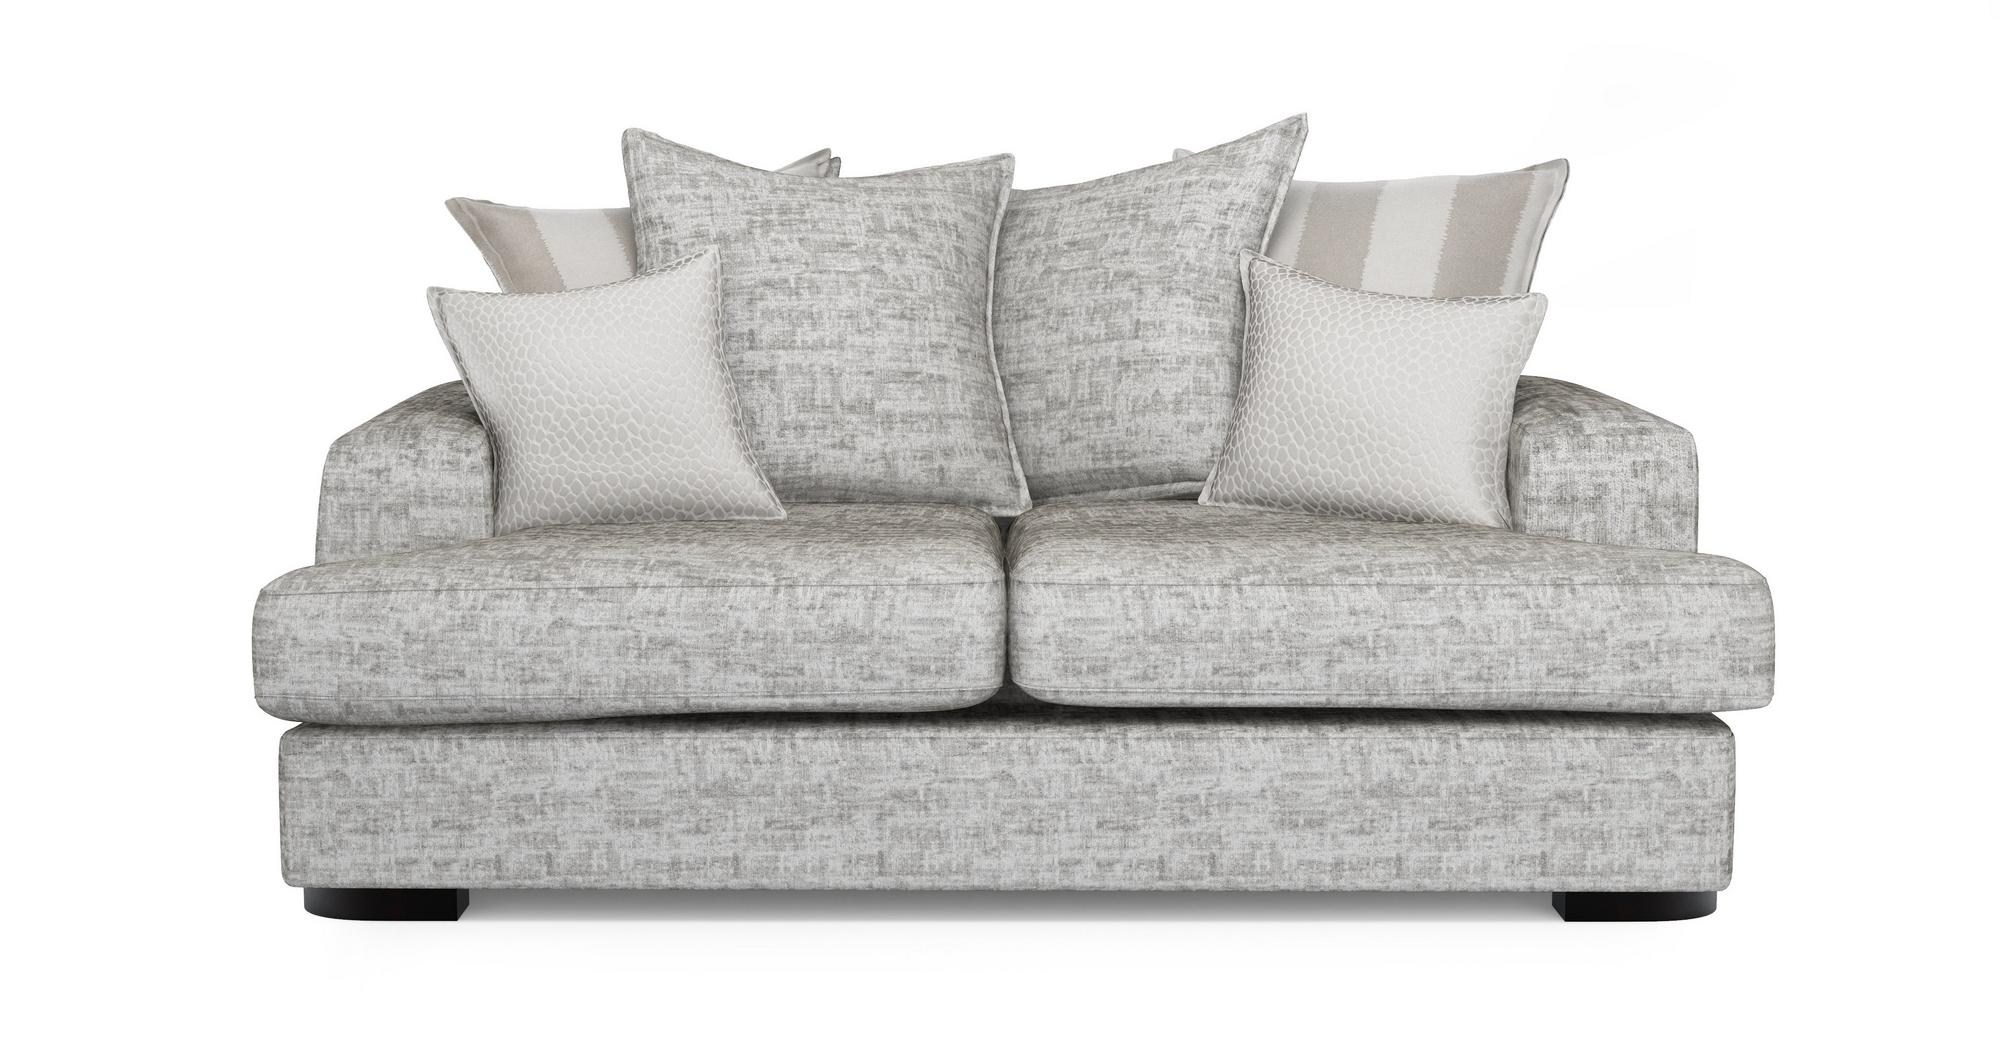 Best of sectional sofas that come apart sectional sofas for Sectional sofas that come apart